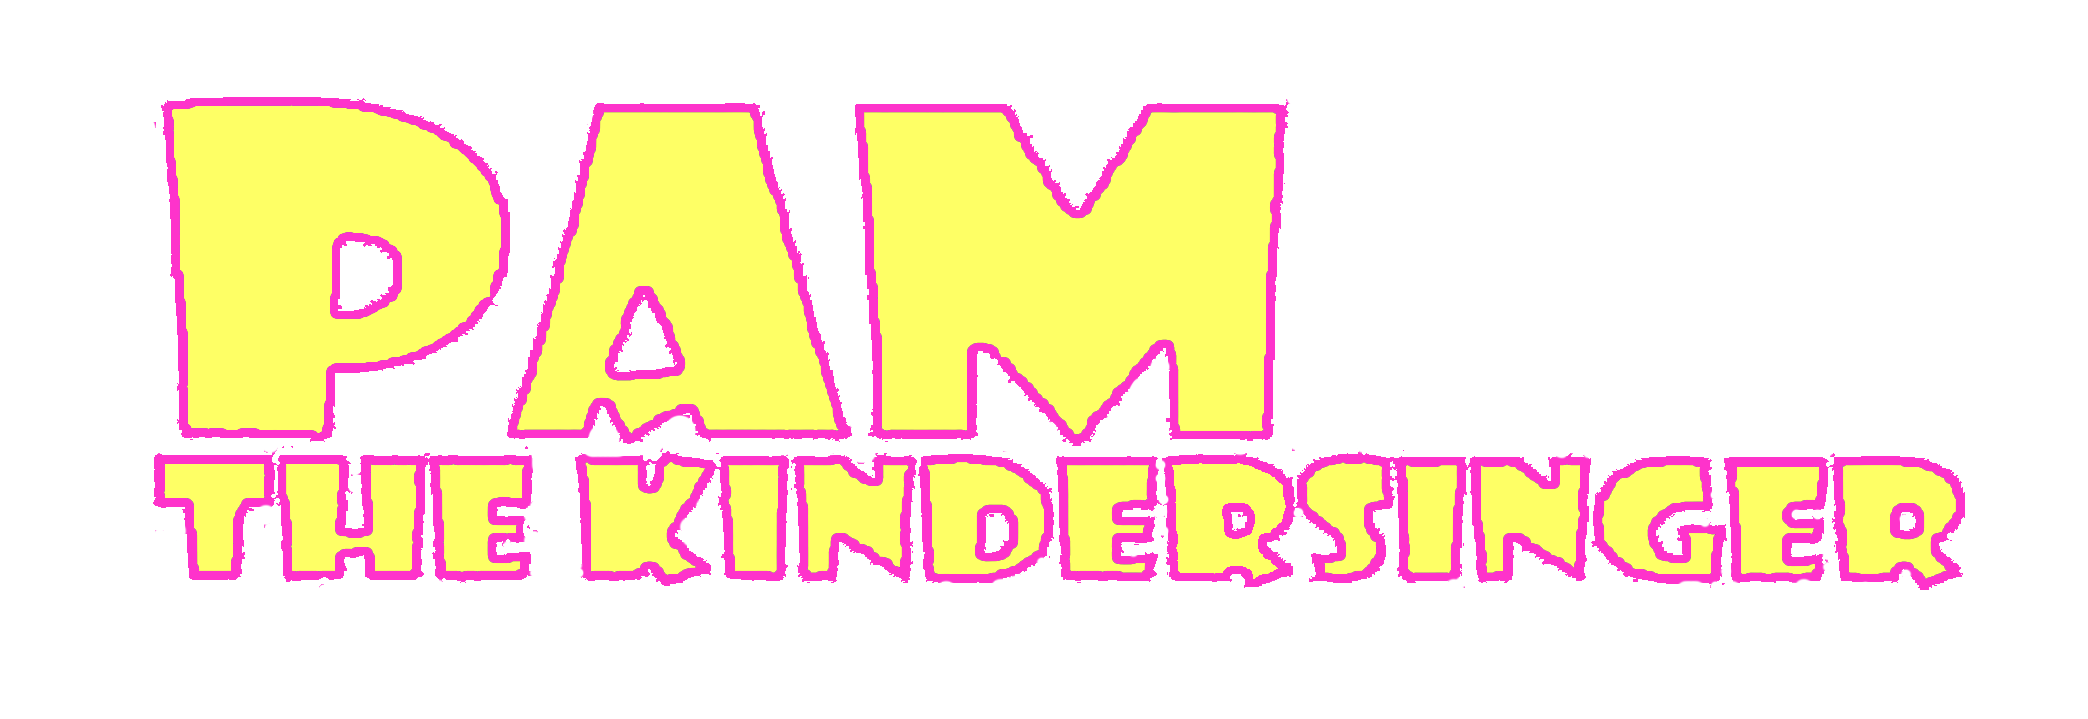 Pam the Kindersinger | Childrens Entertainment Programs